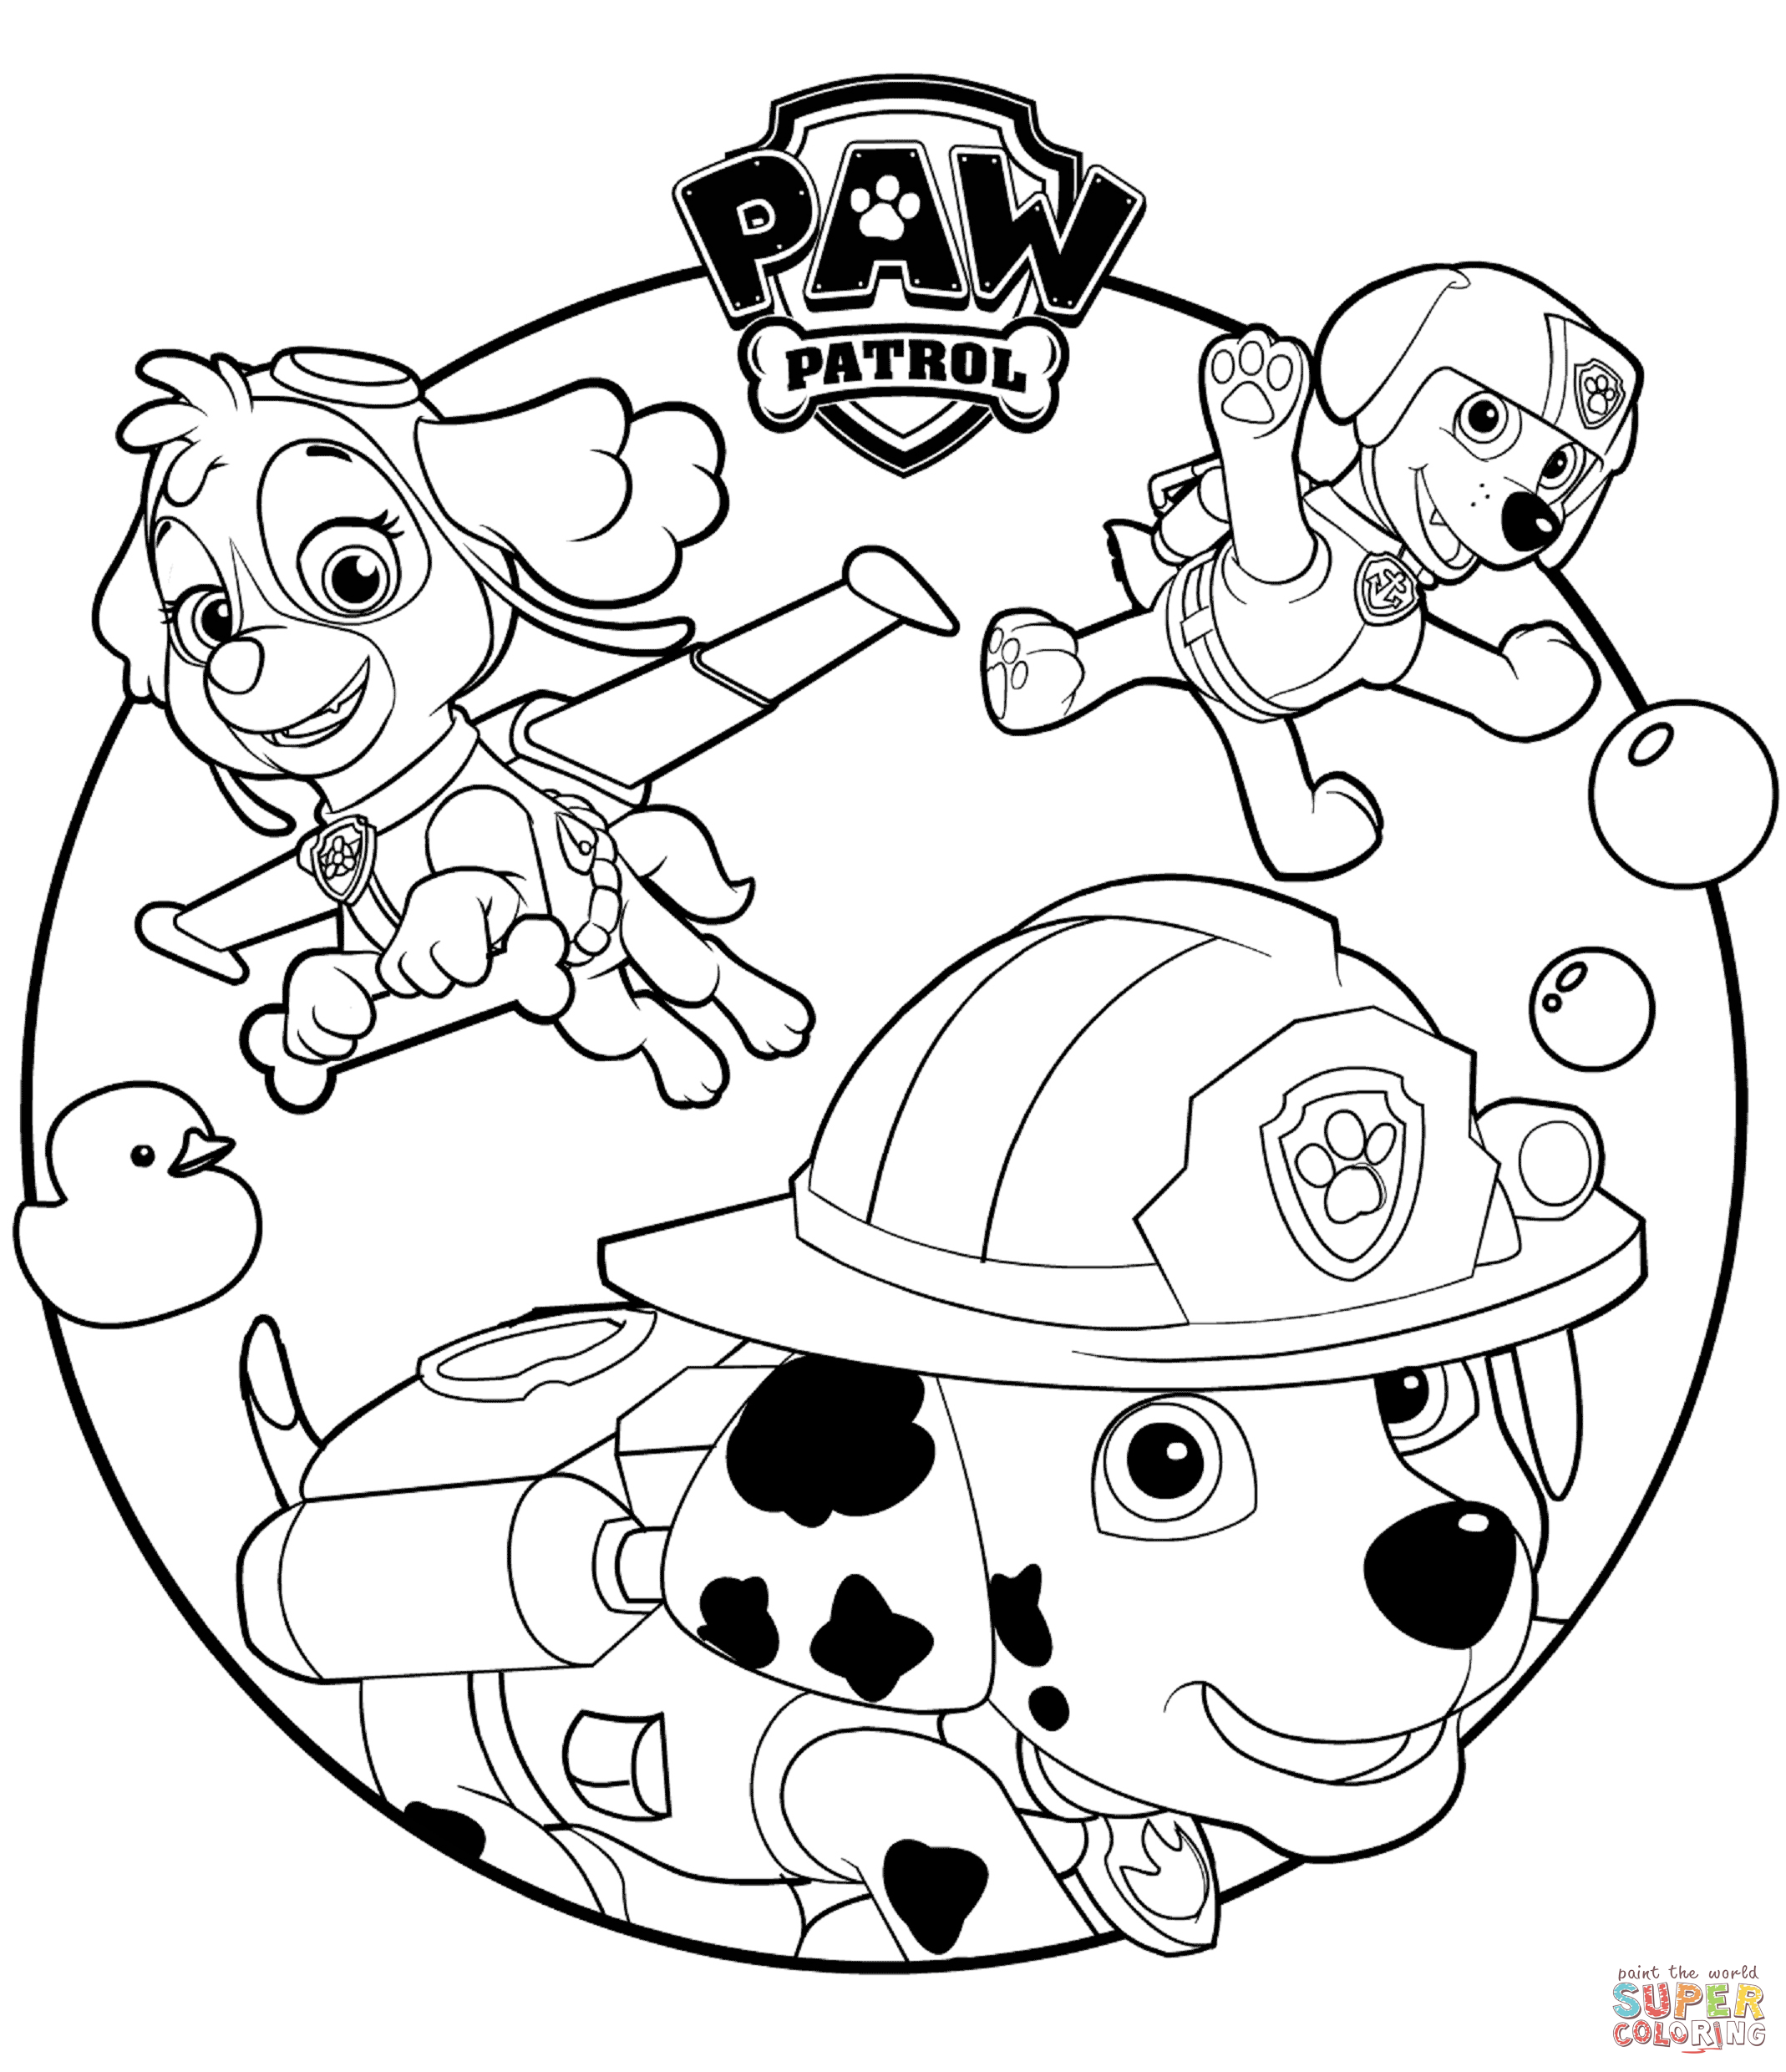 Paw patrol clip art black and white clip art black and white download PAW Patrol coloring pages | Free Coloring Pages clip art black and white download